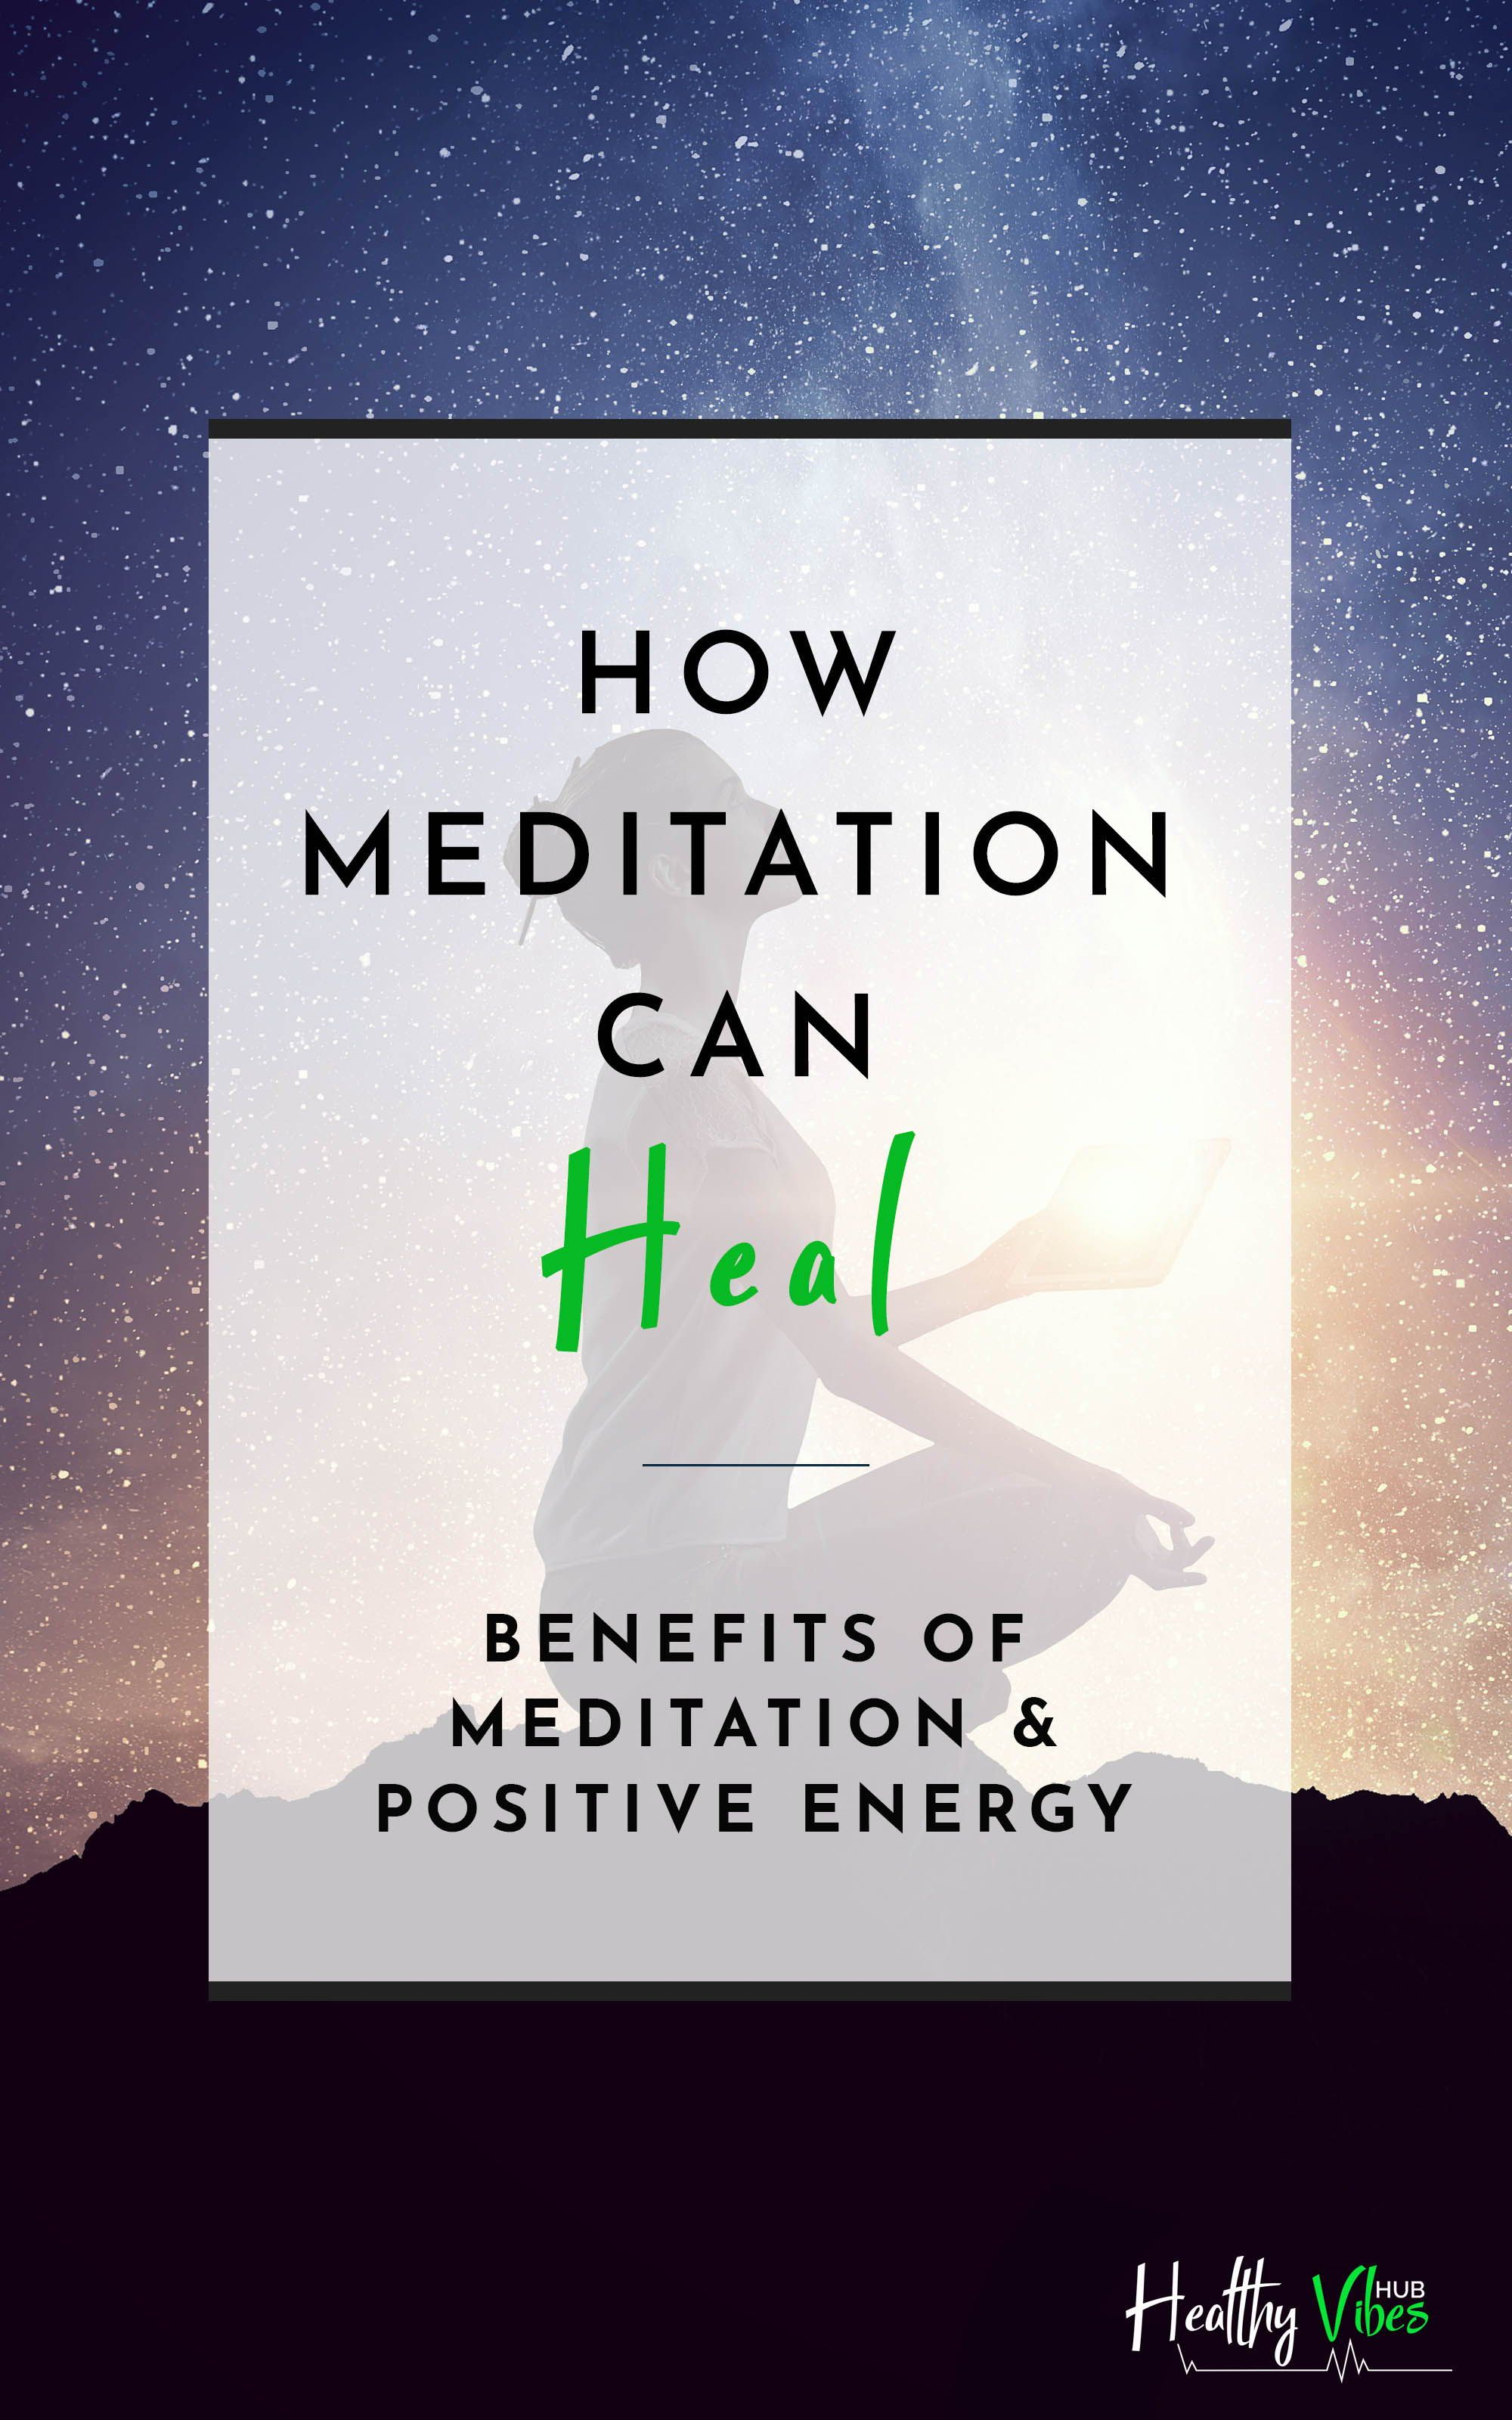 How Meditation Attracts Positive Energy For Healing